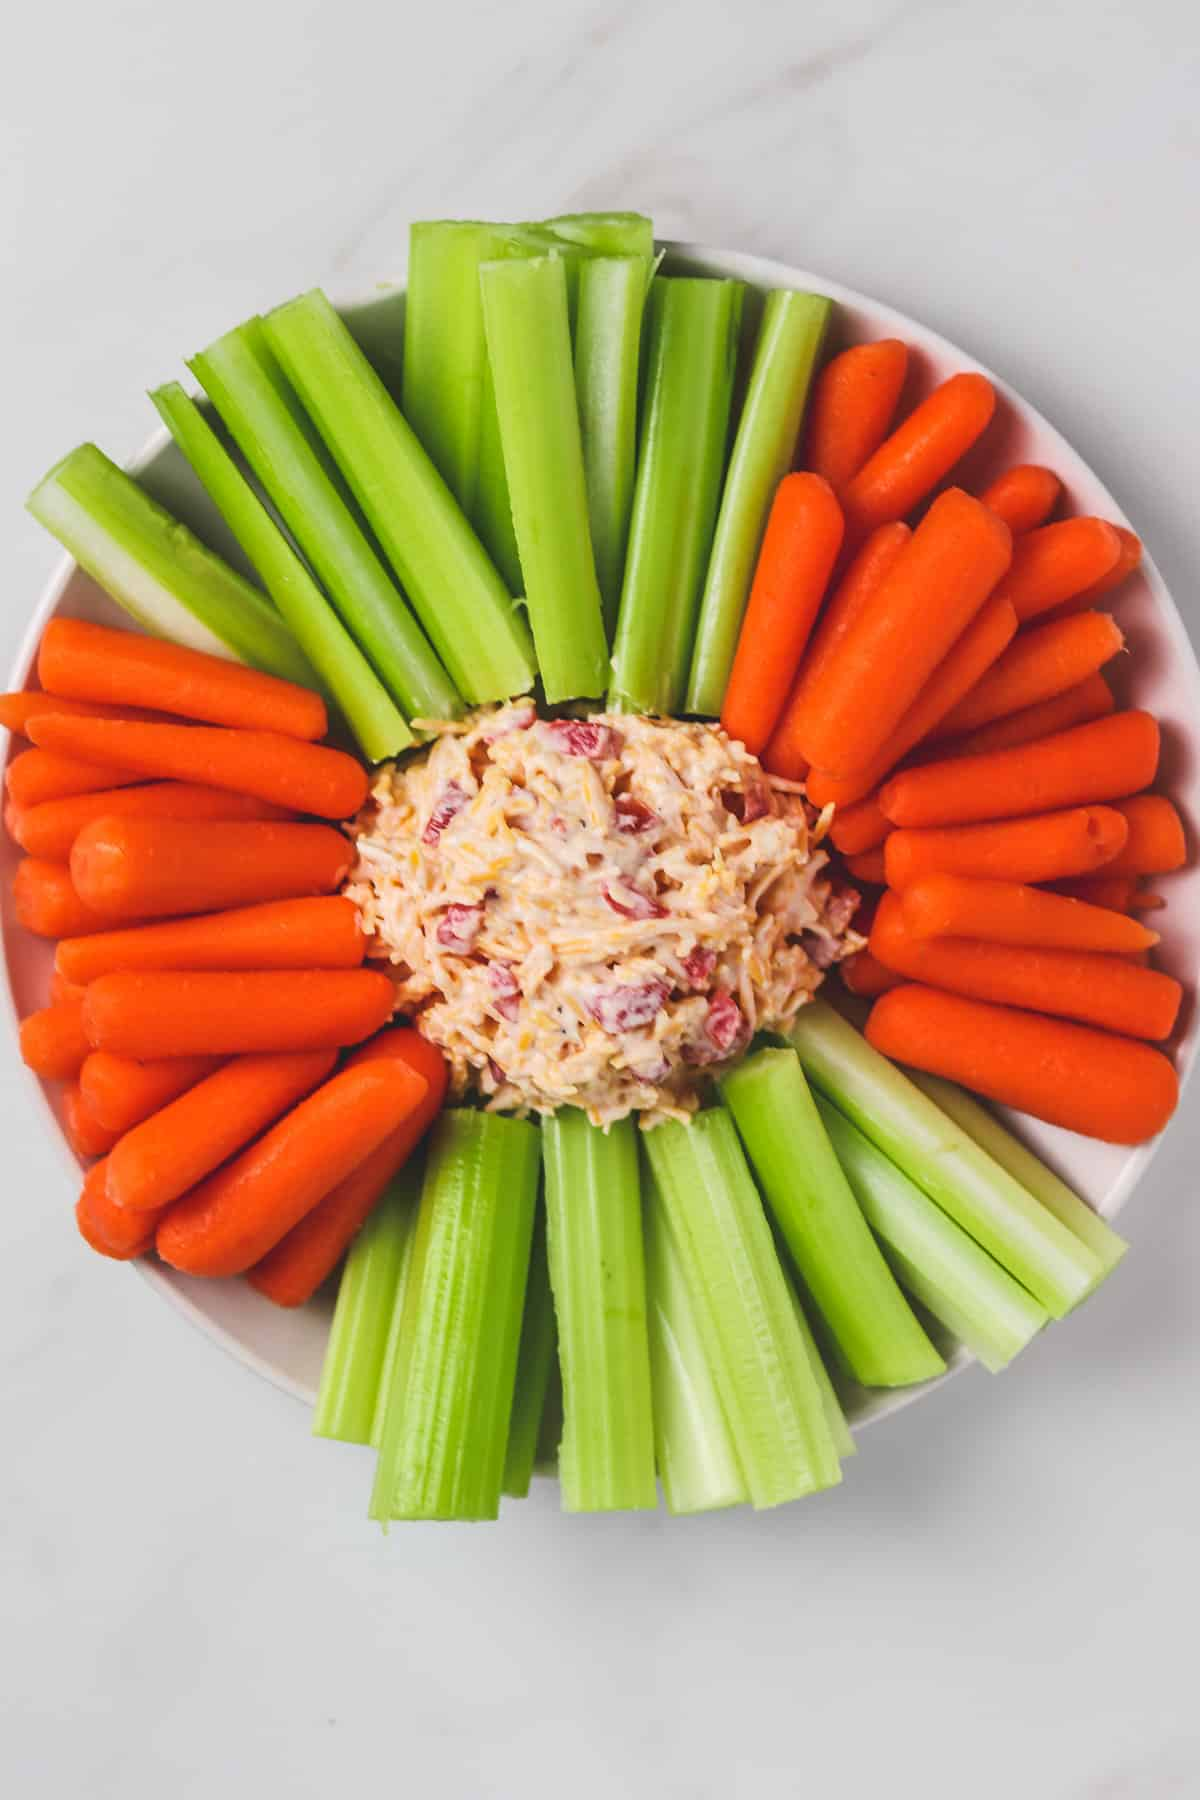 top down view of platter with pimento cheese, carrots, and celery